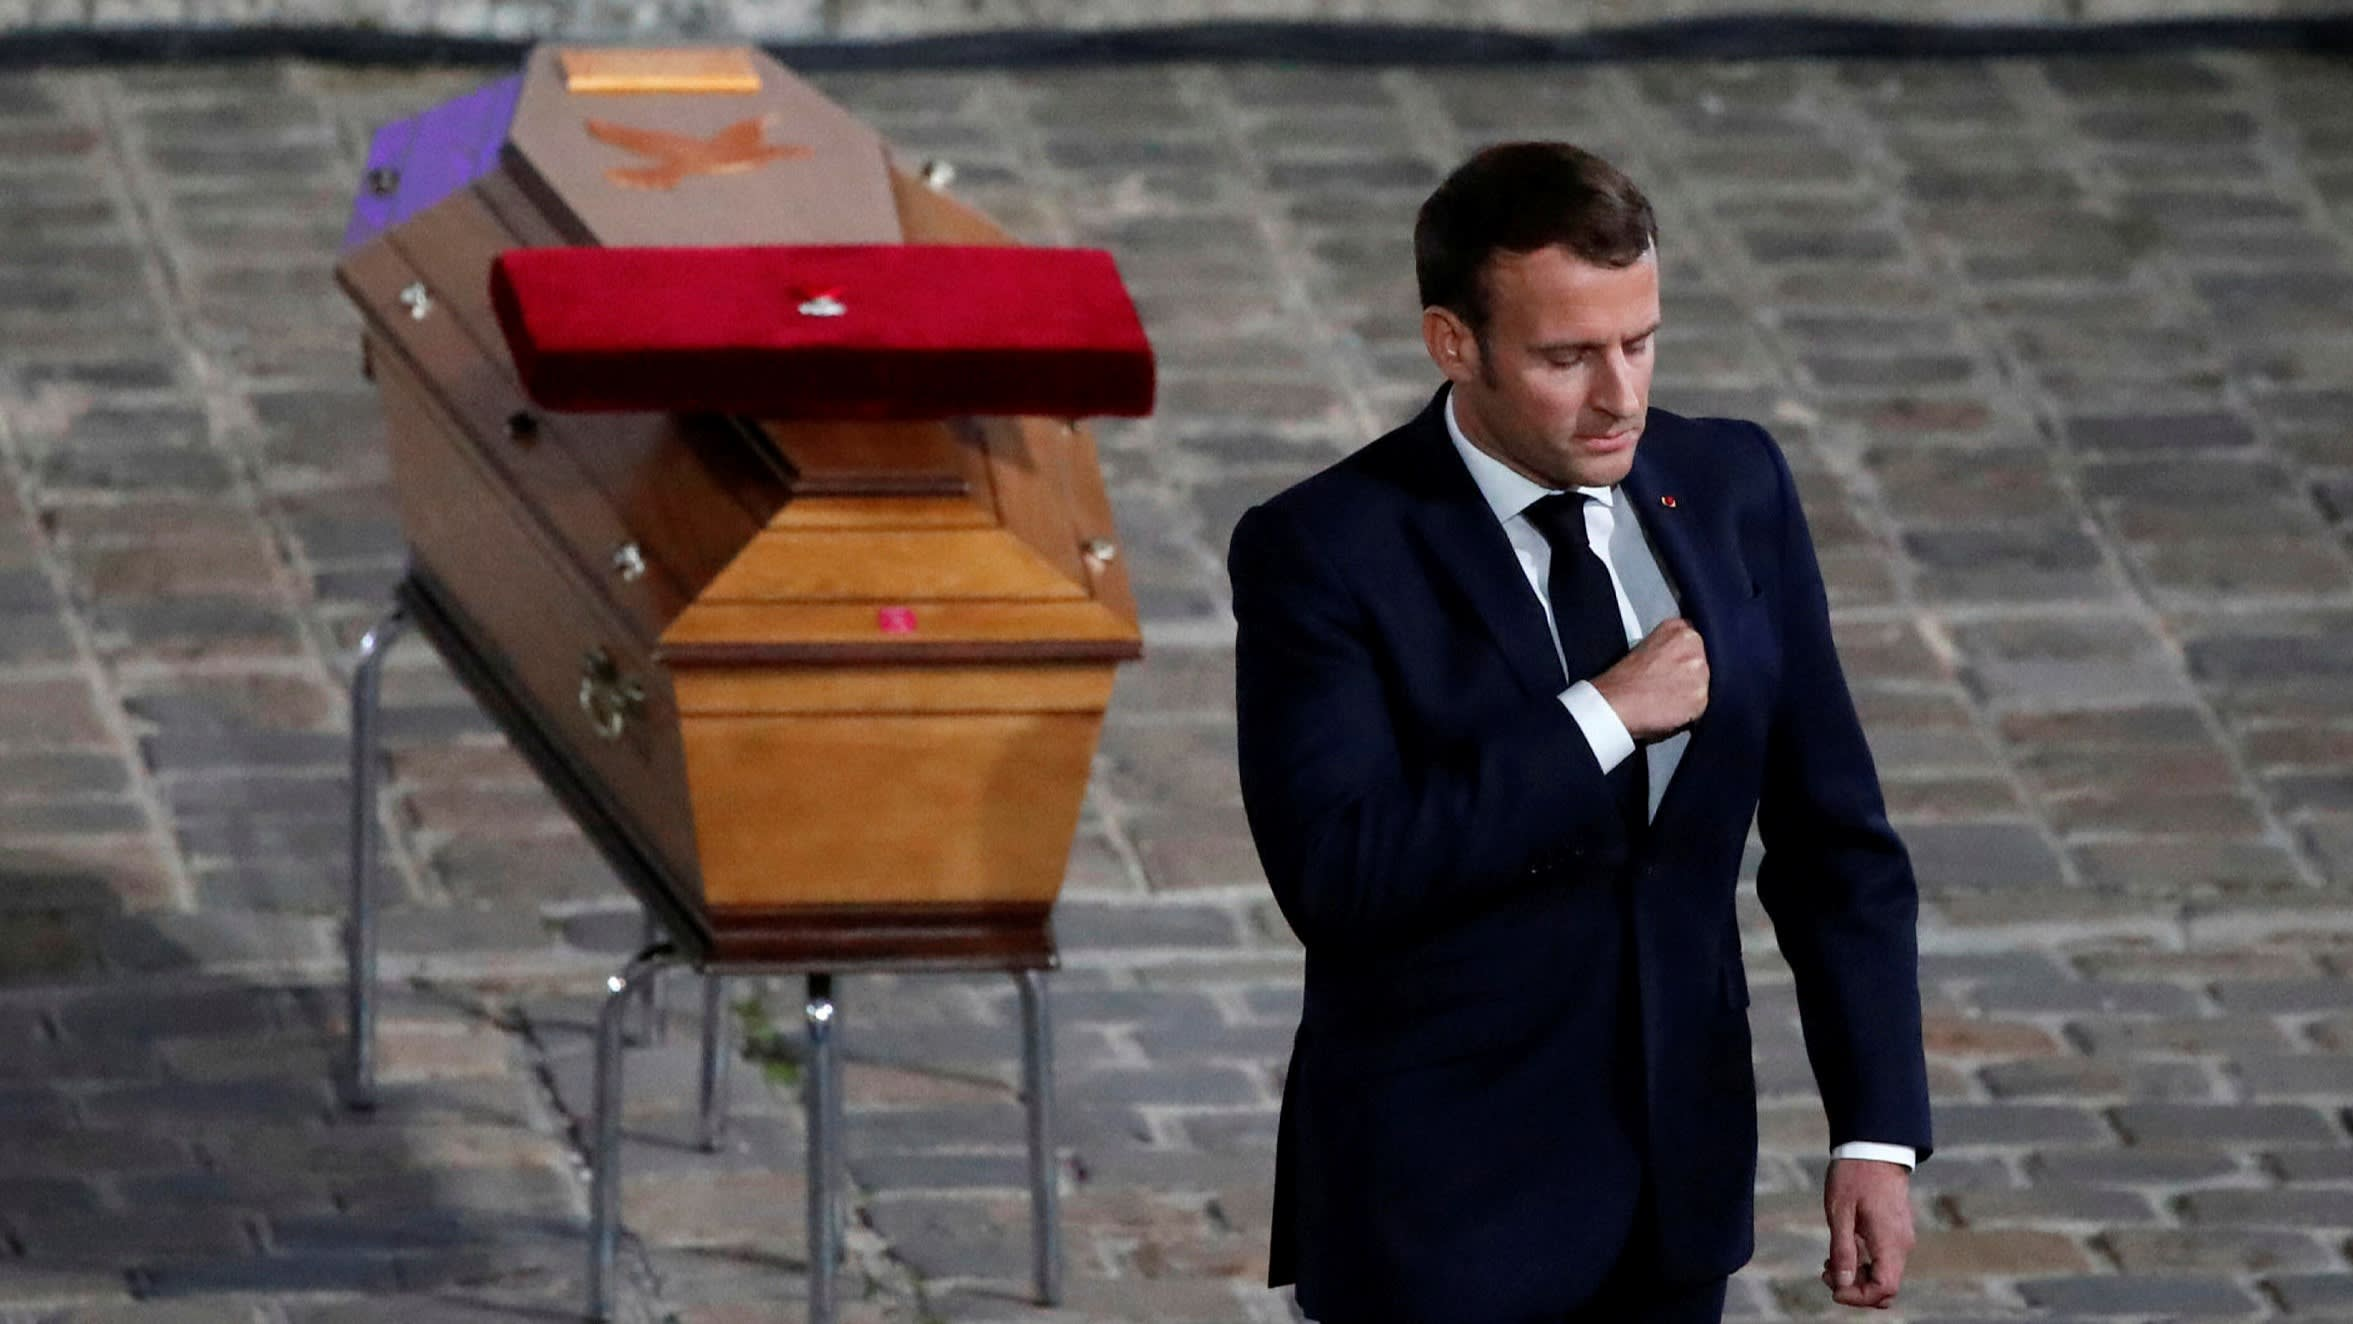 Emmanuel Macron Secularism And Islam Financial Times